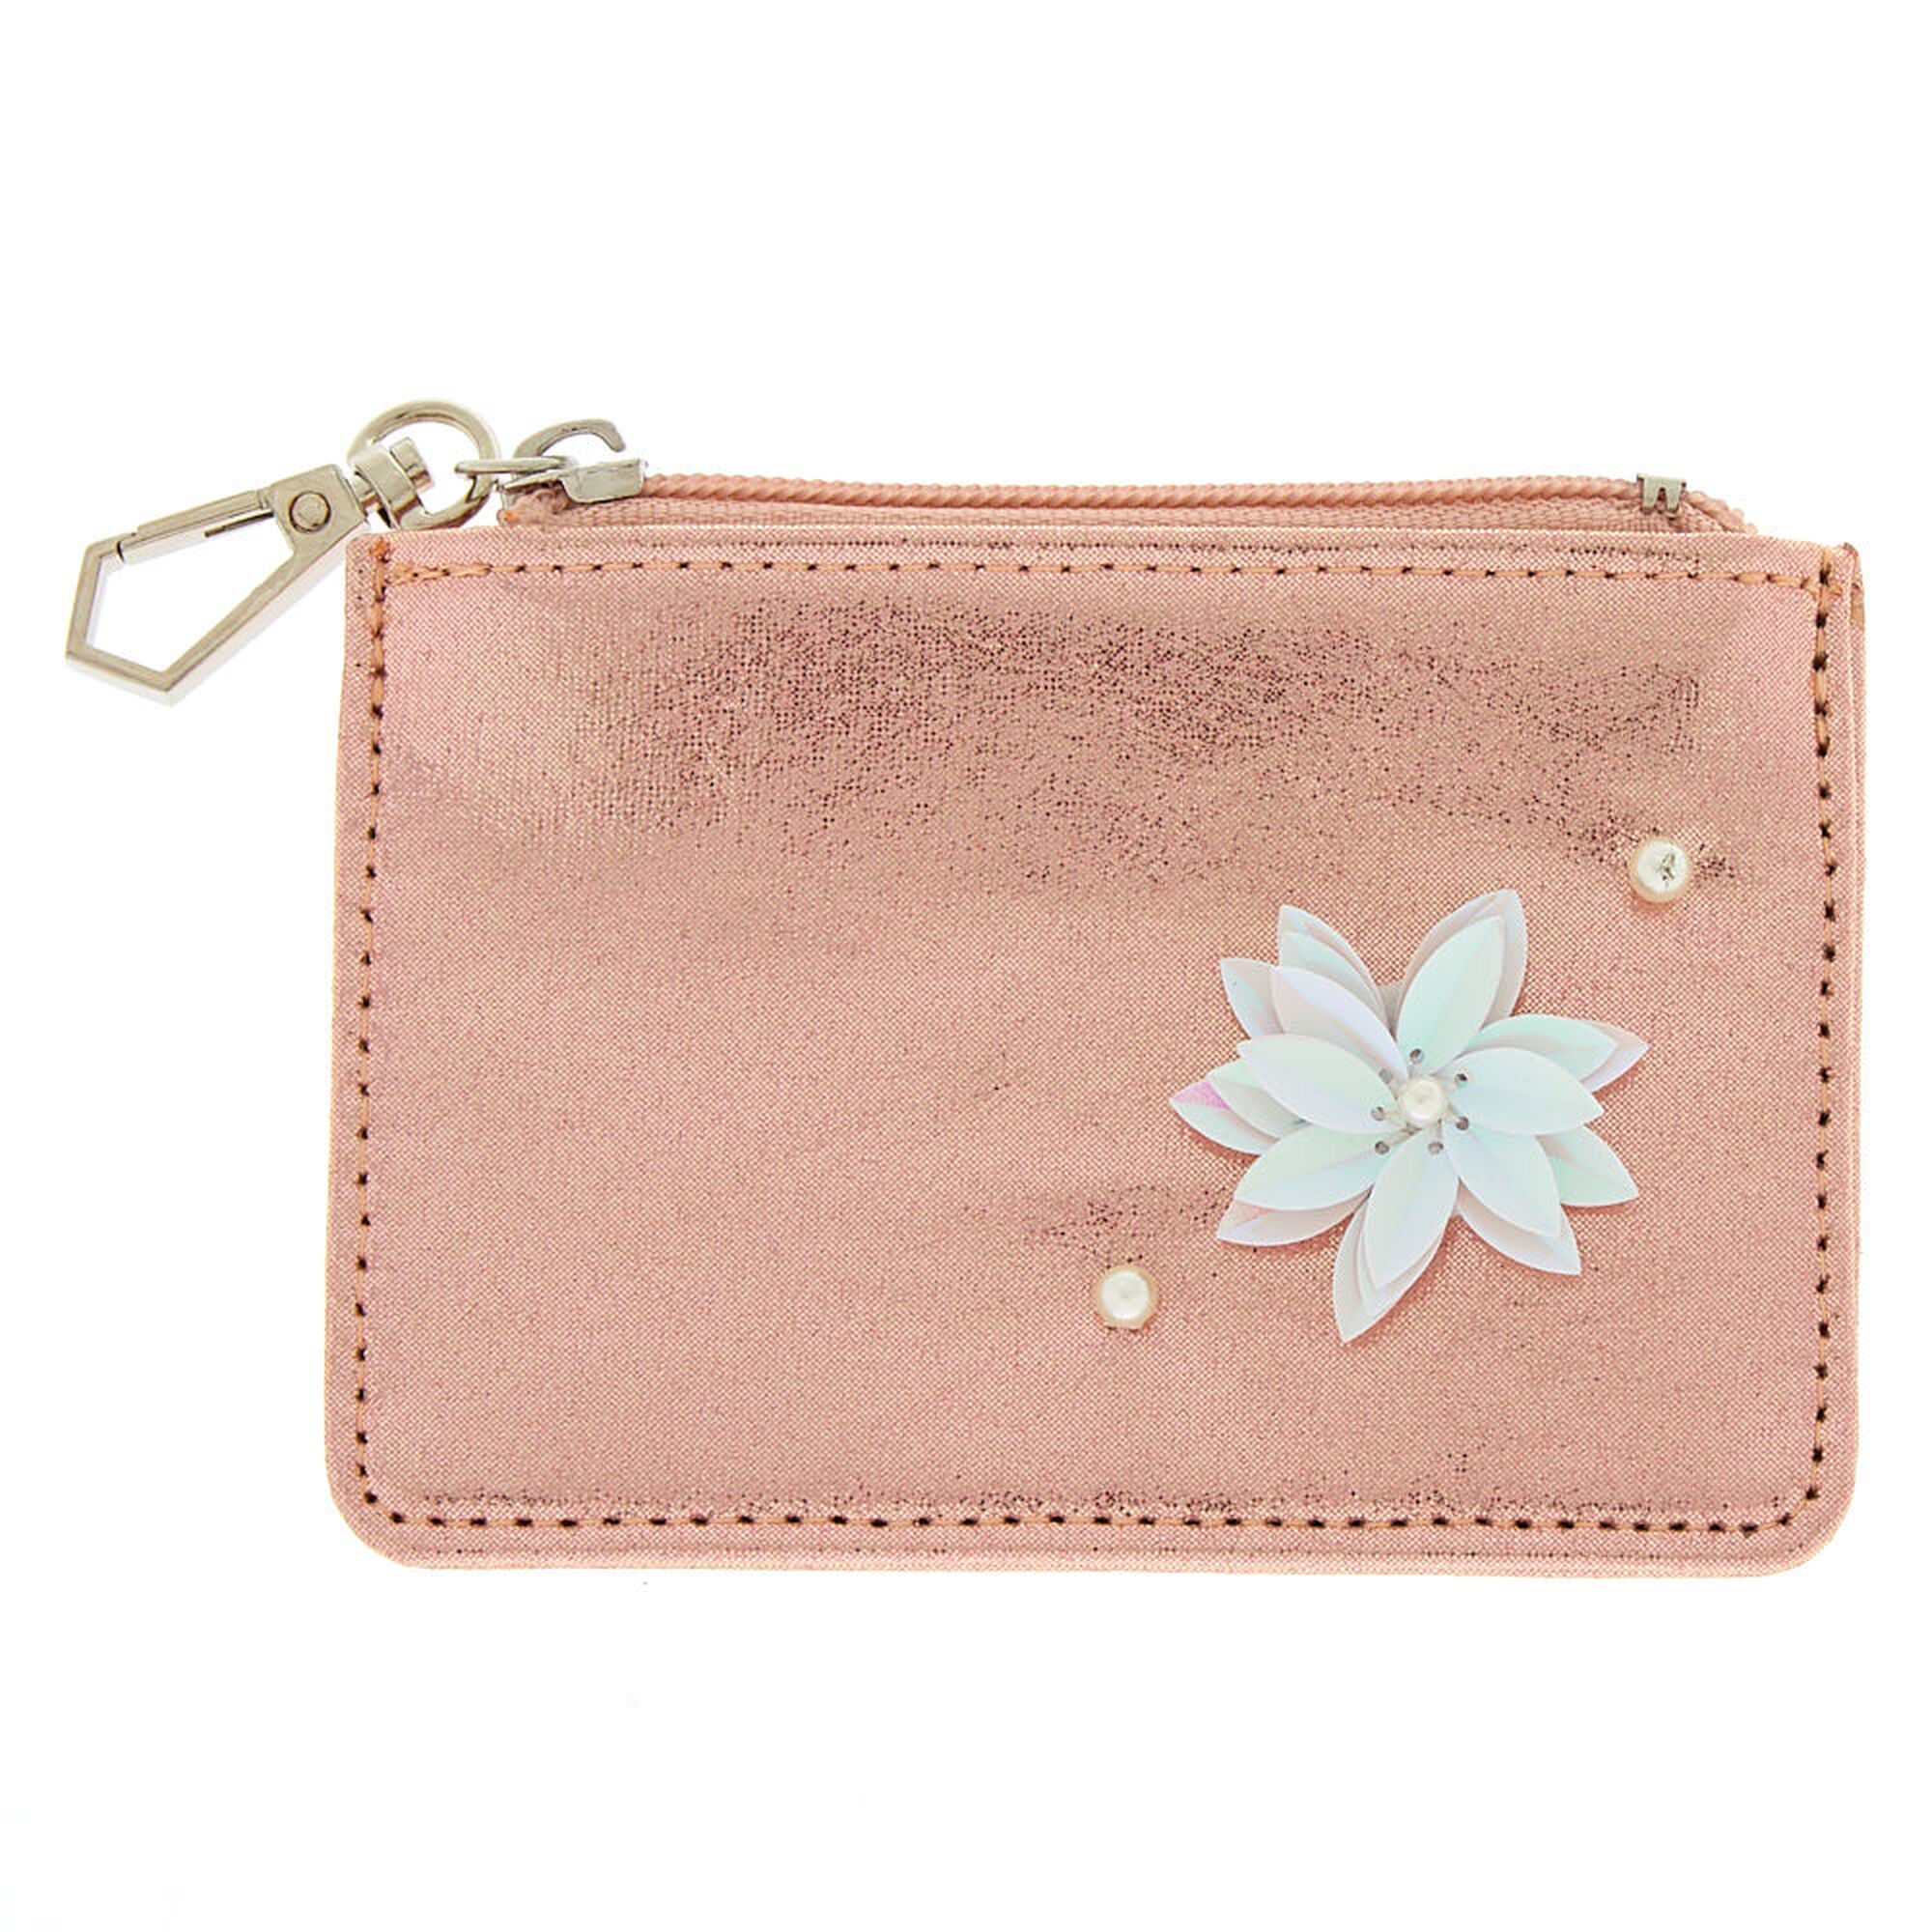 Sequin Flower Zip Coin Purse Pink Icing Us